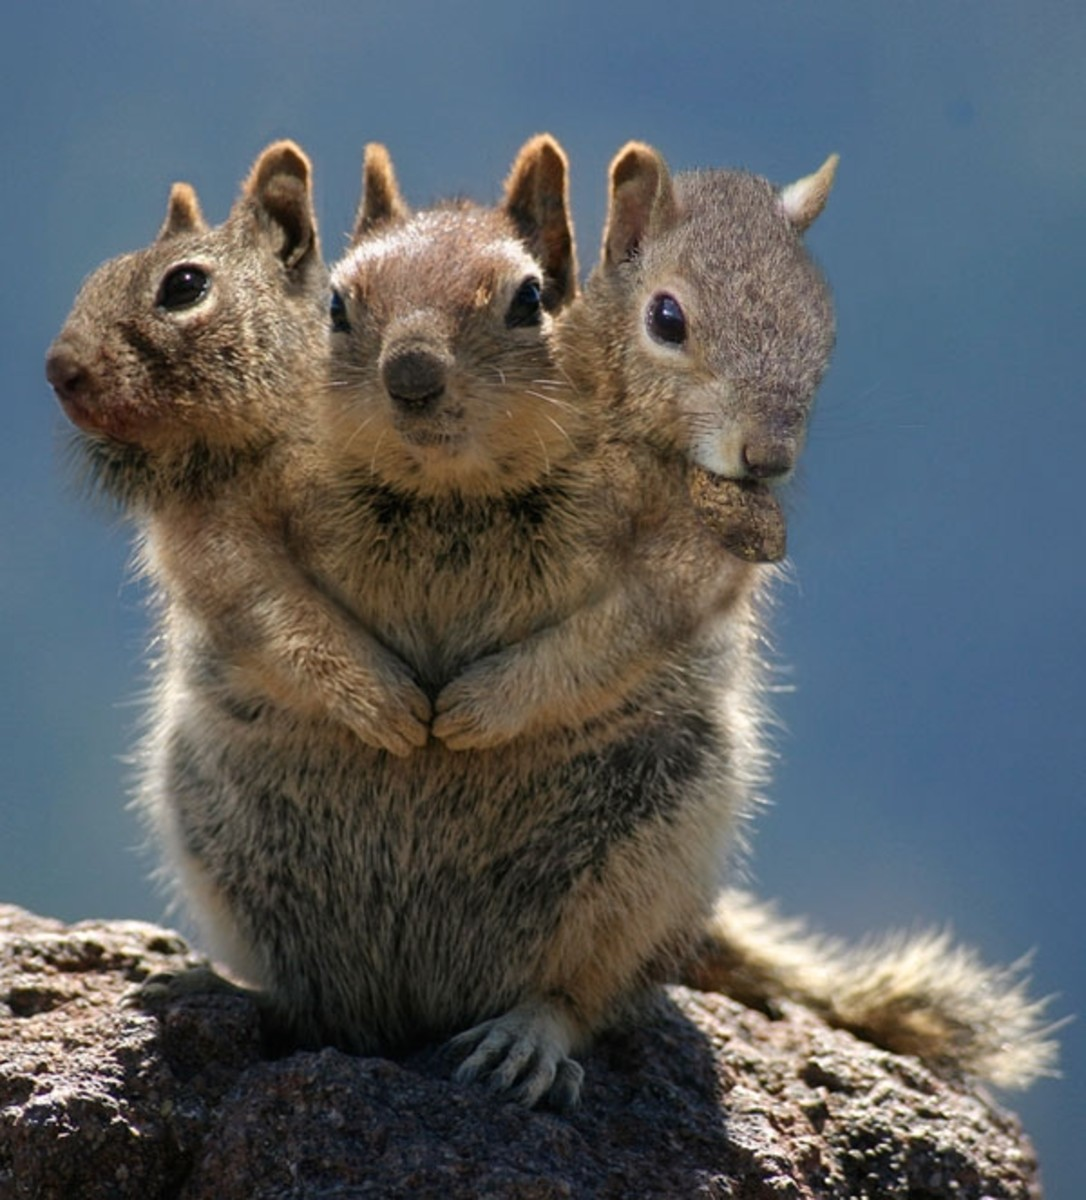 THREE HEADED SQUIRREL / Jazelmaarzowezen